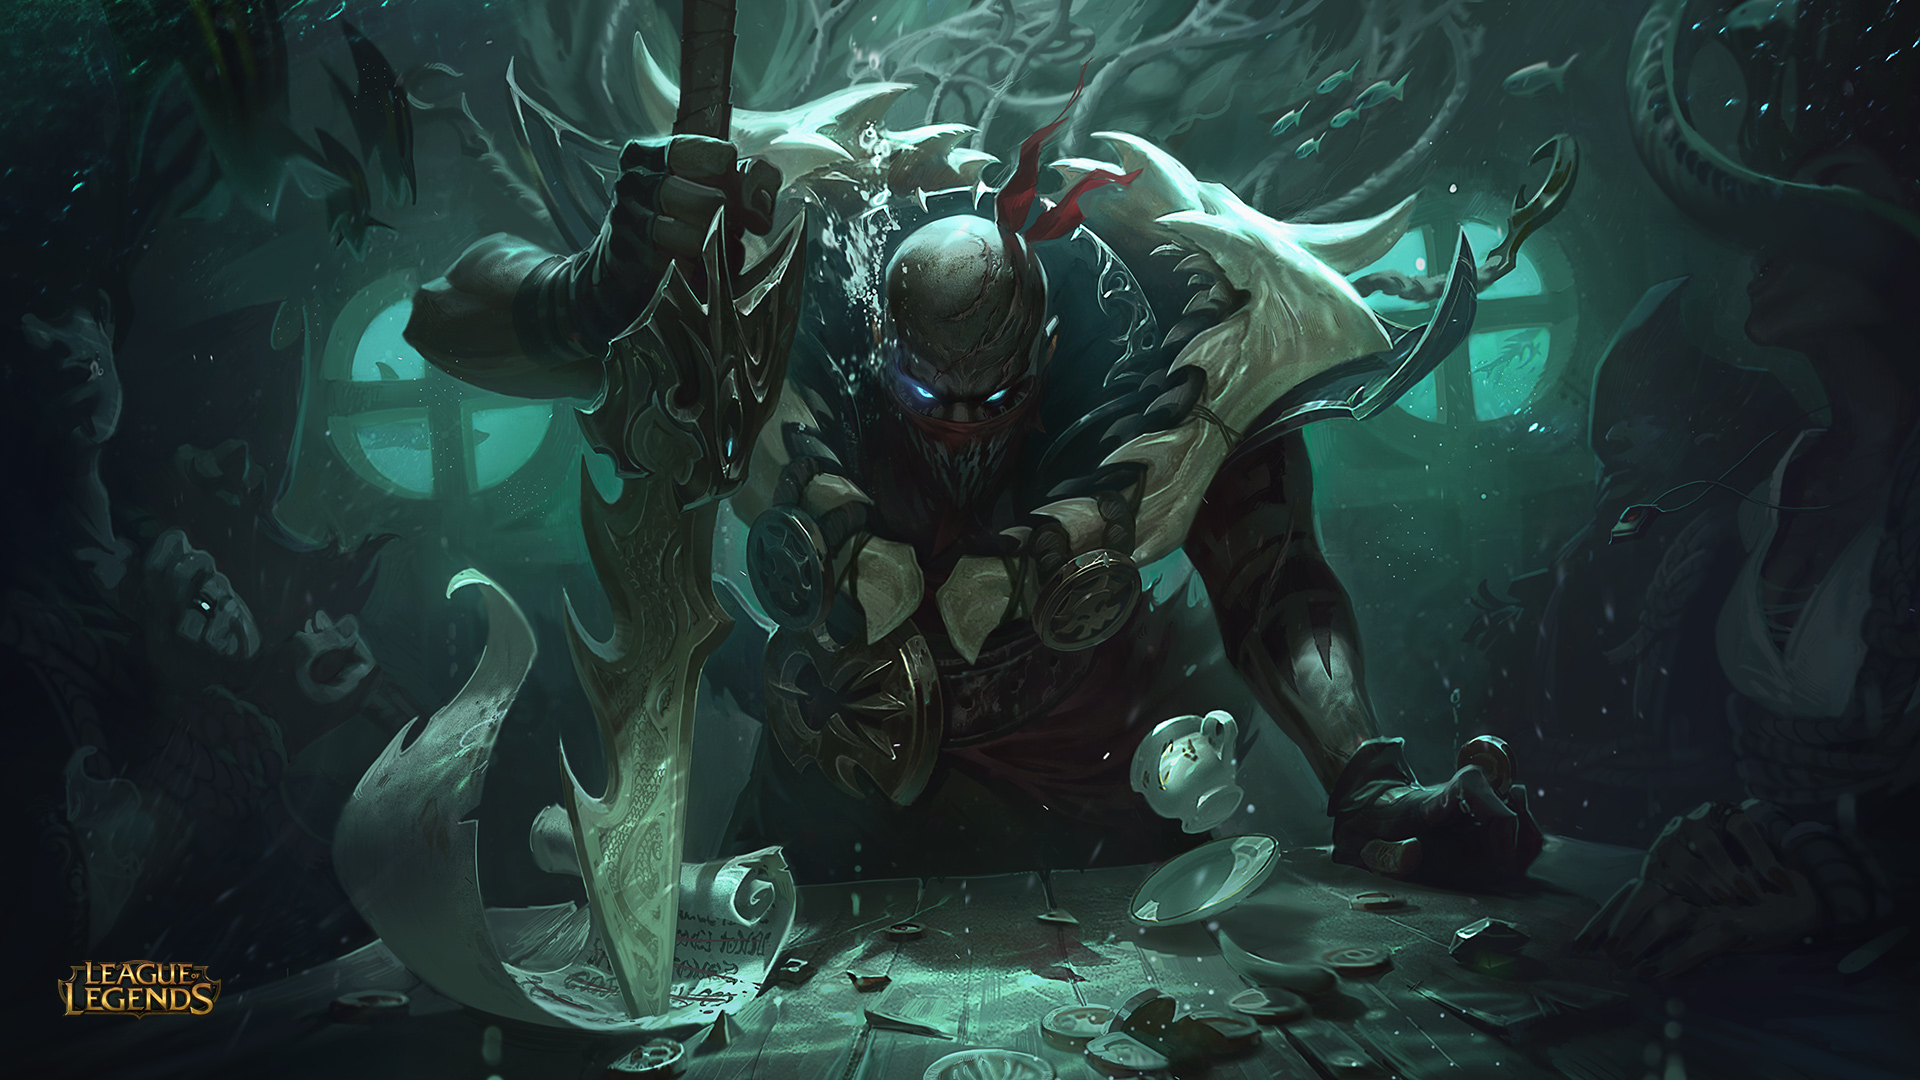 Pyke, l'éventreur des abysses – League of legends